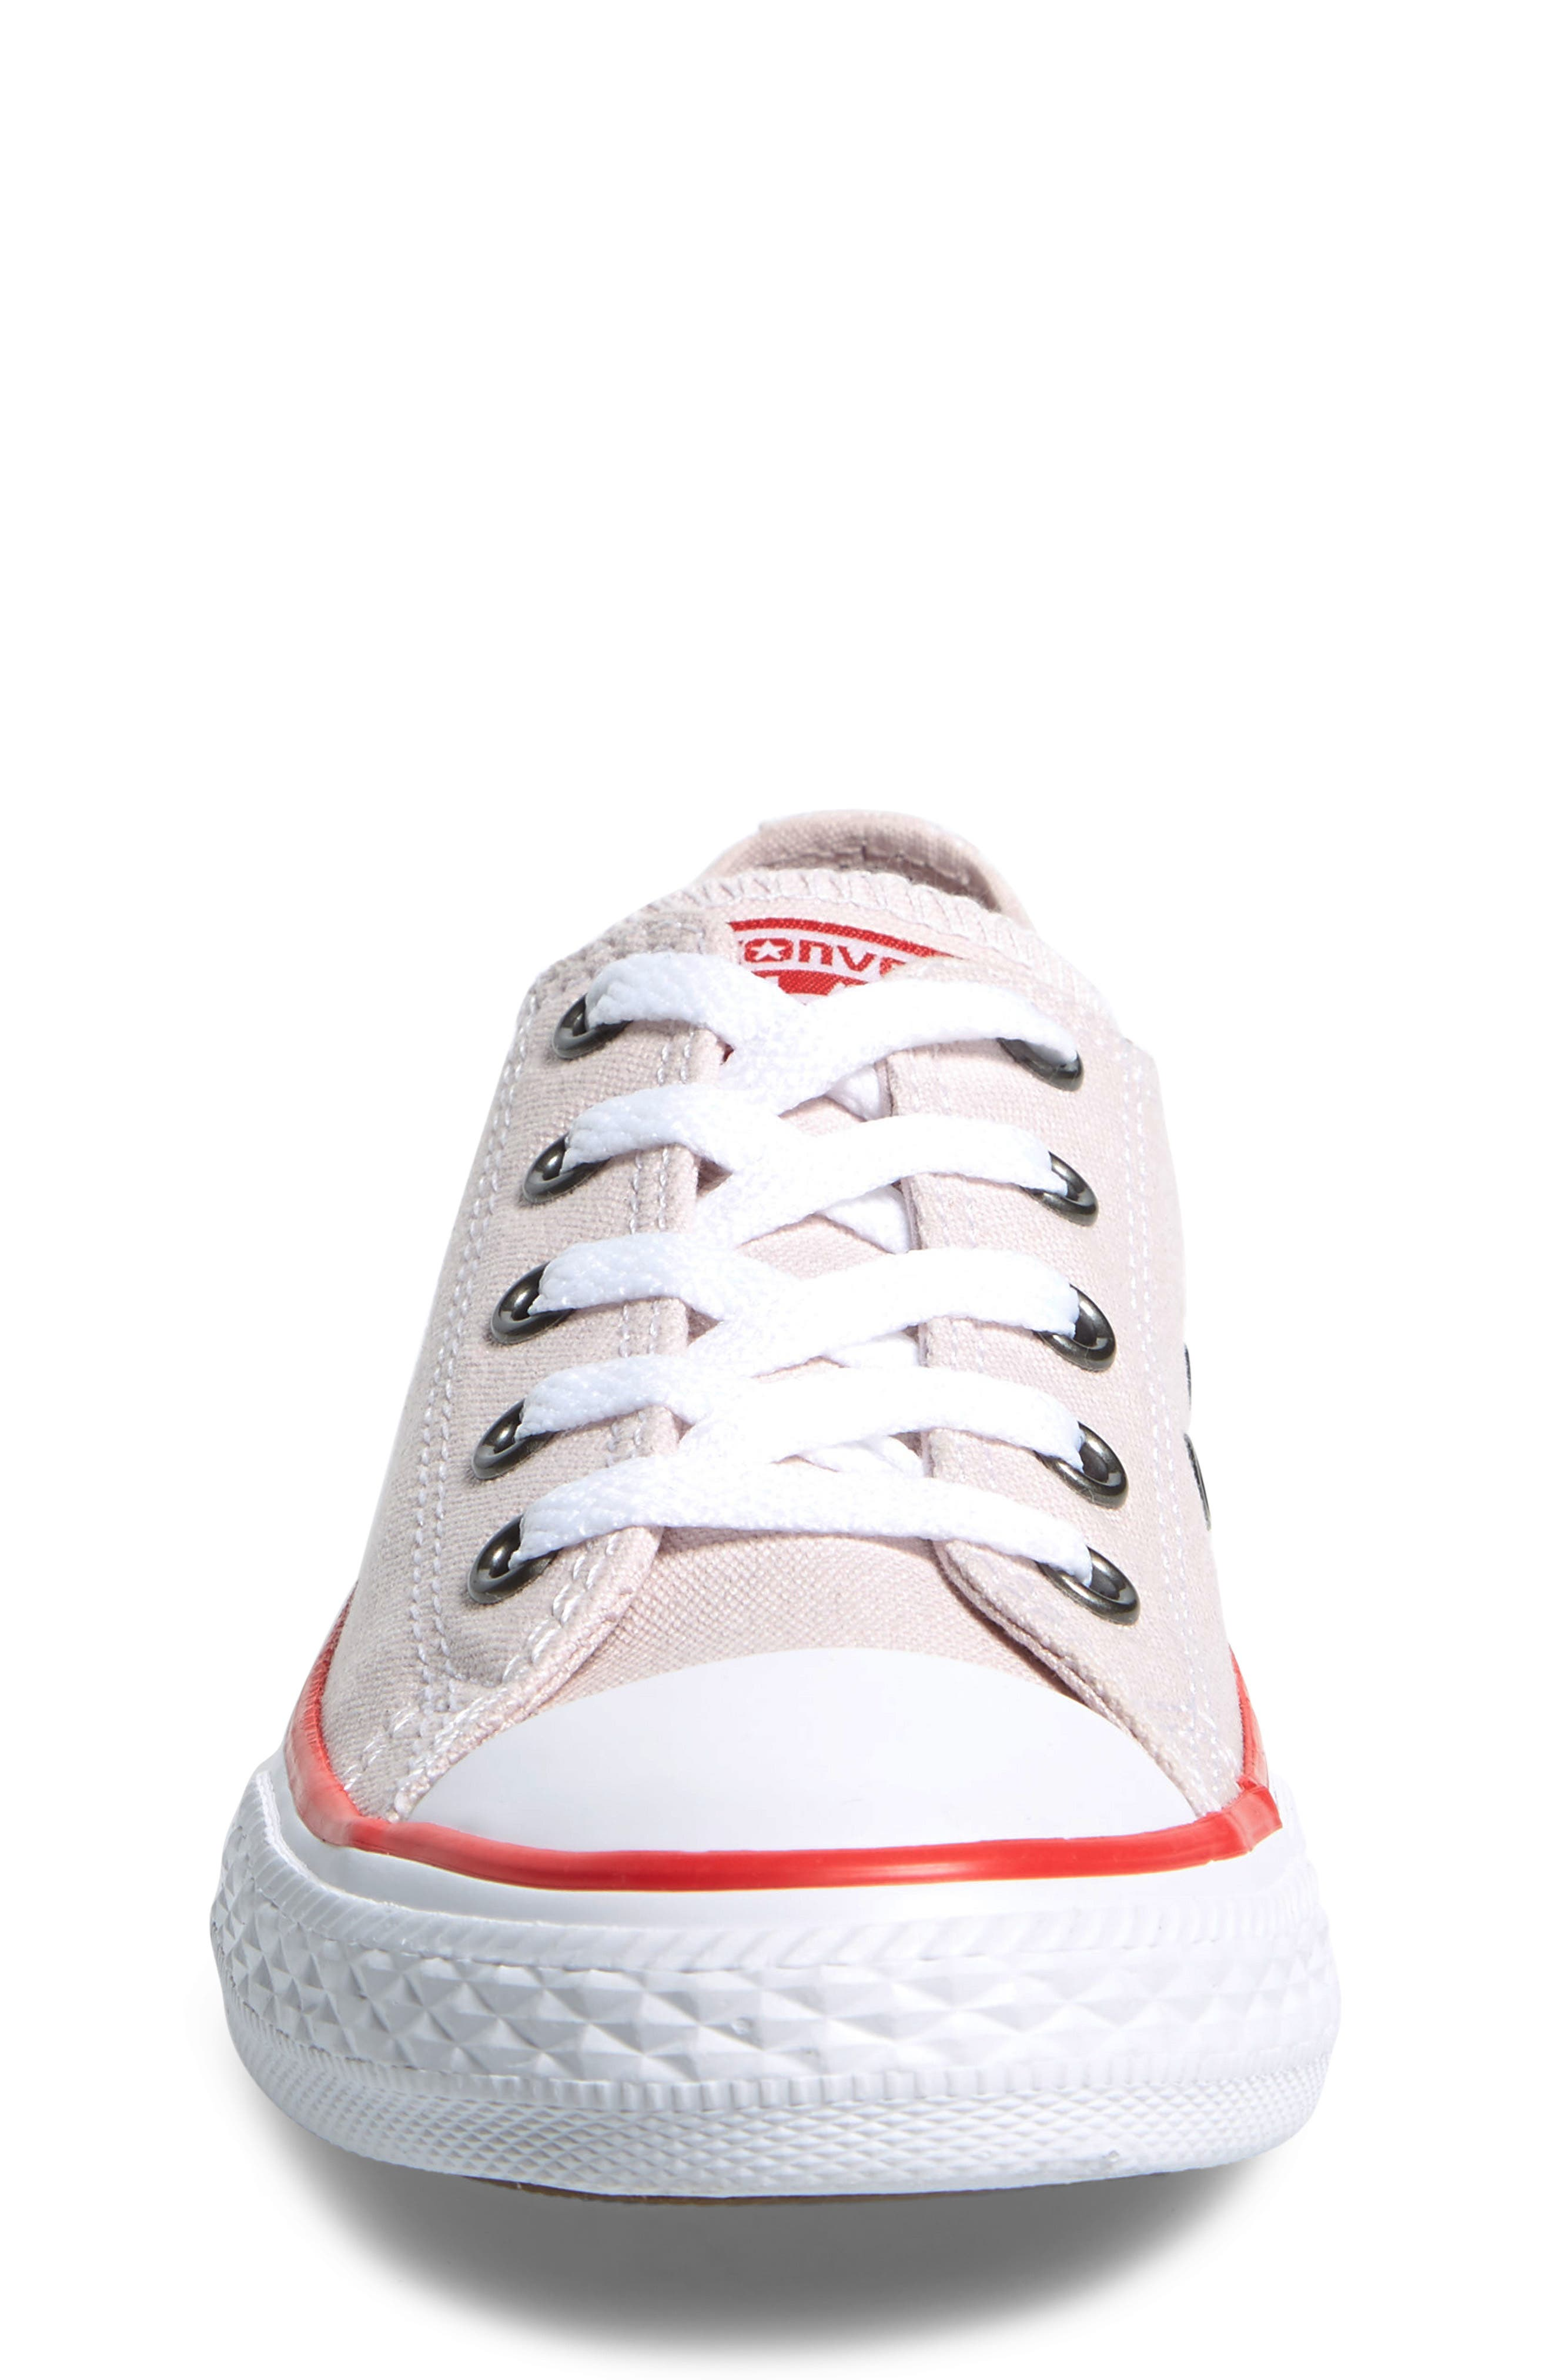 Chuck Taylor<sup>®</sup> All Star<sup>®</sup> Low Top Sneaker,                             Alternate thumbnail 8, color,